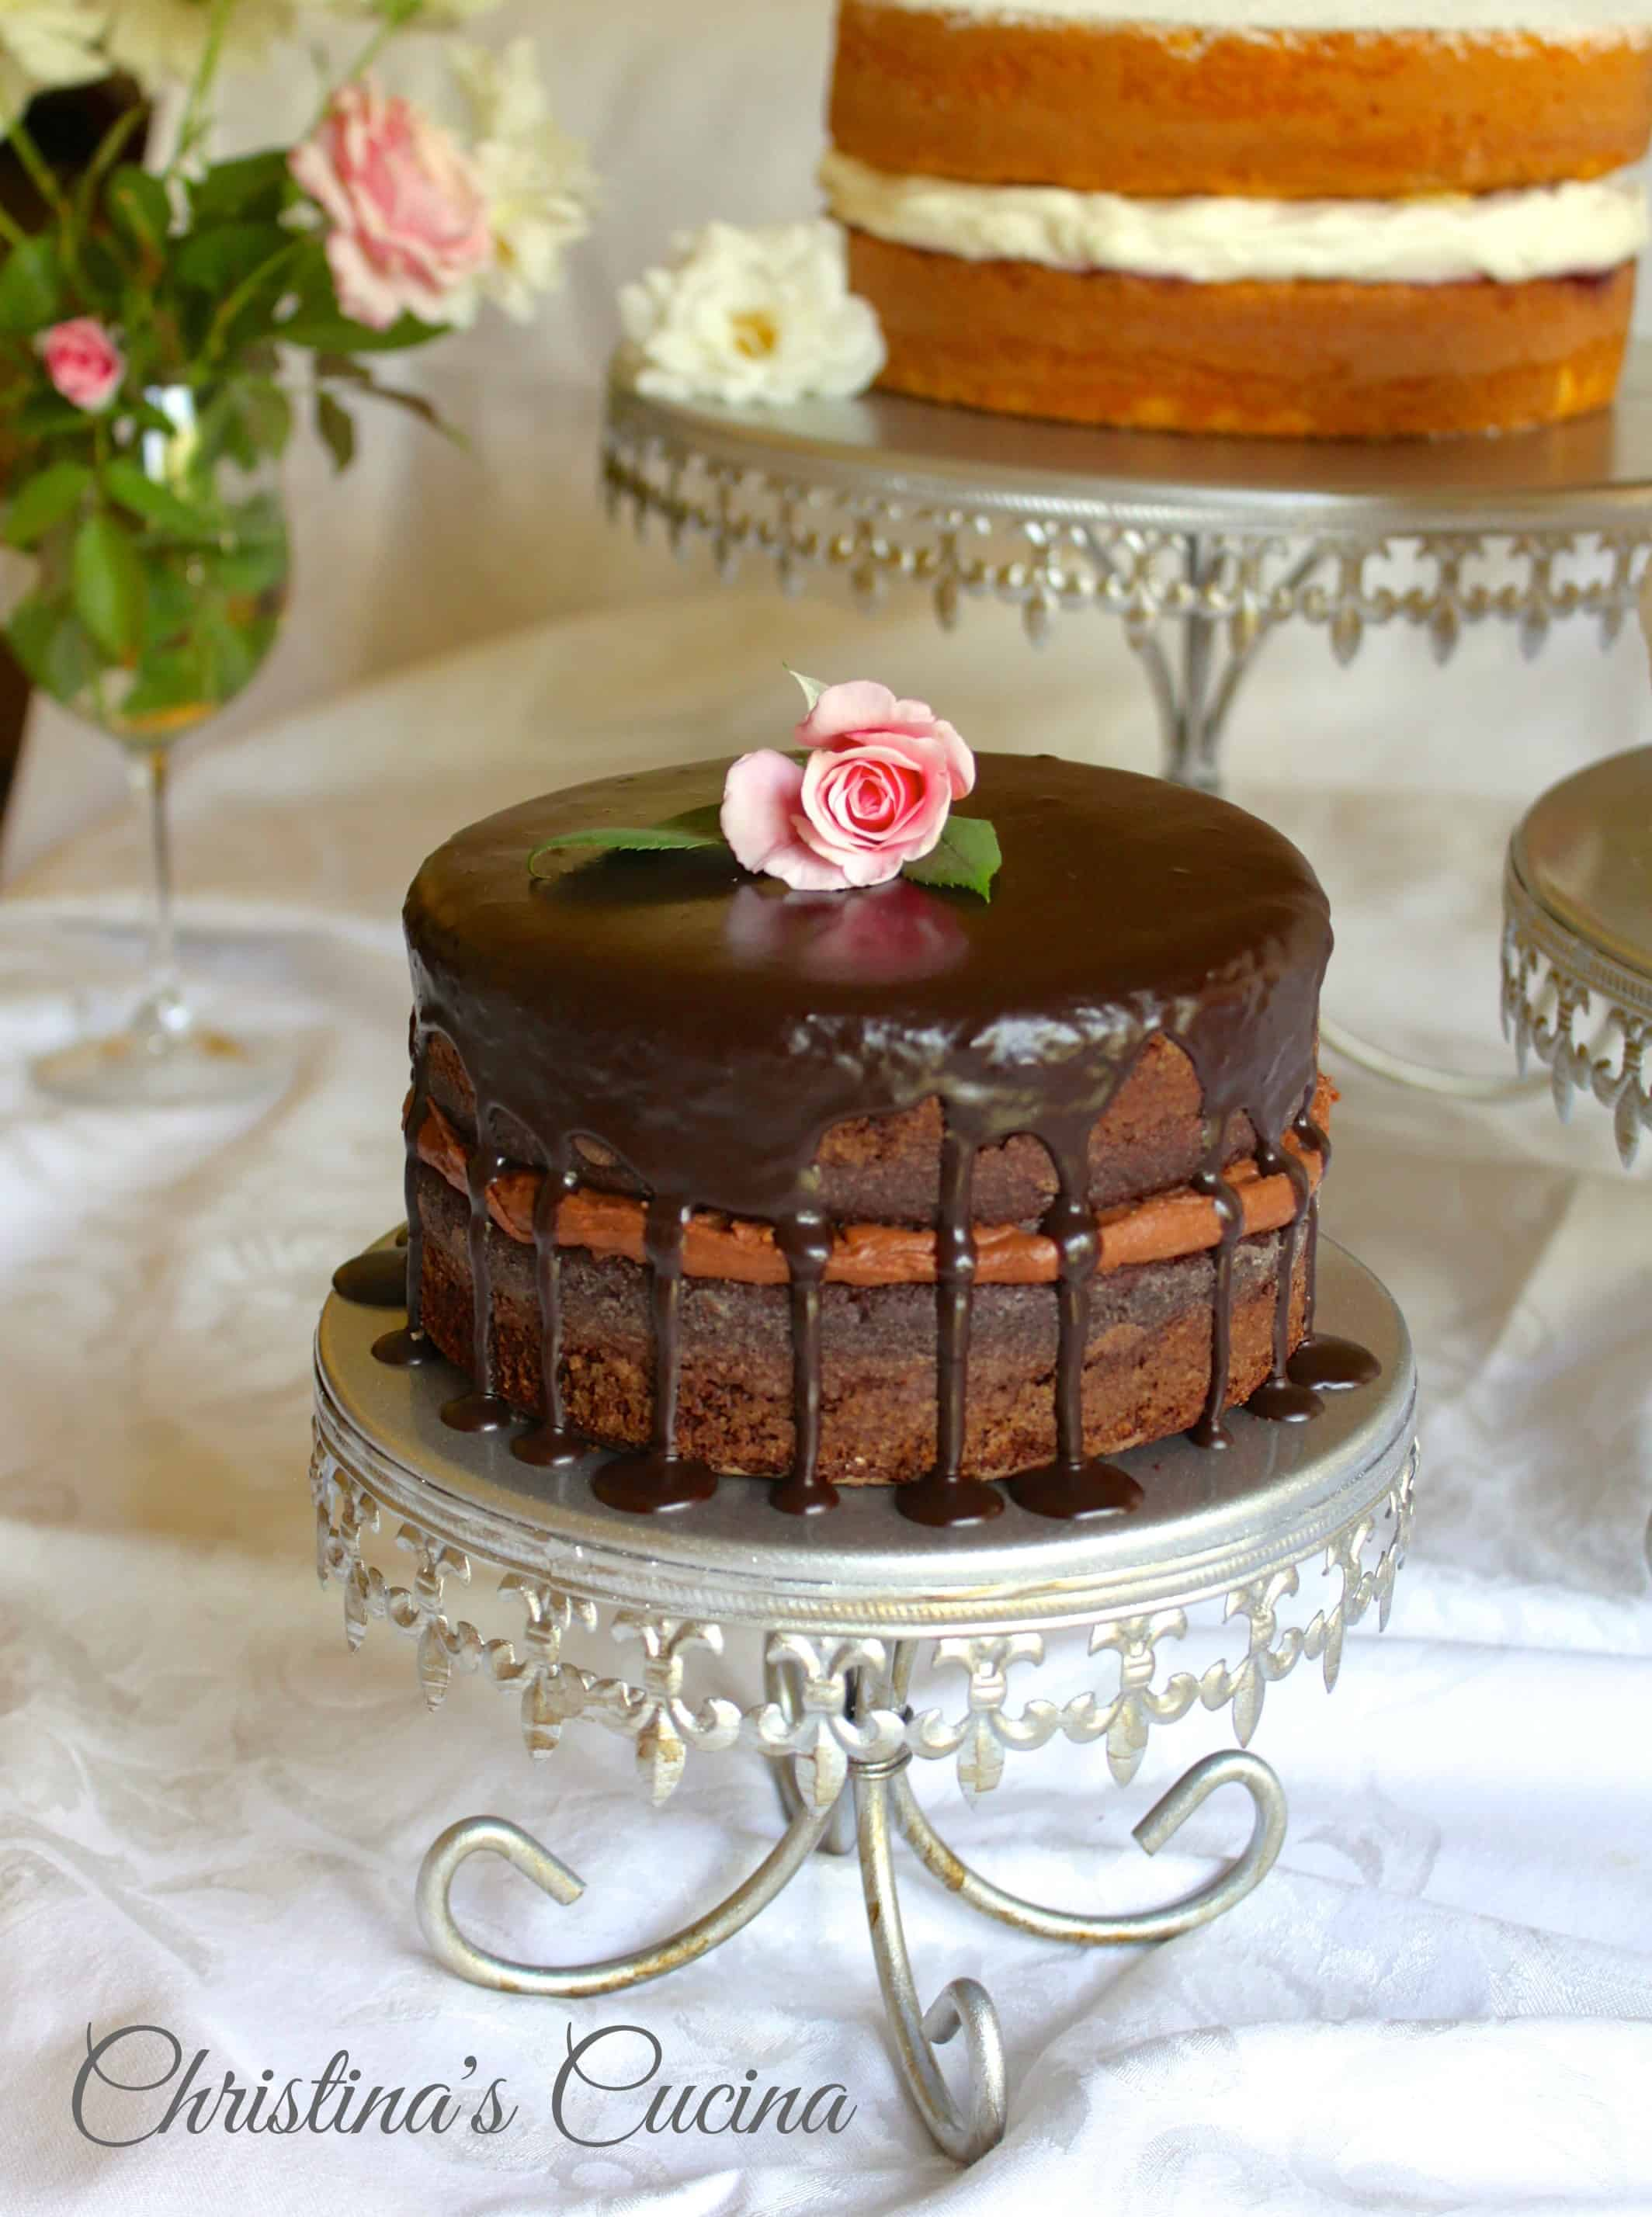 Decorated German Chocolate Cake A Cake Decorating Tutorial For Impressive Results For The Cake